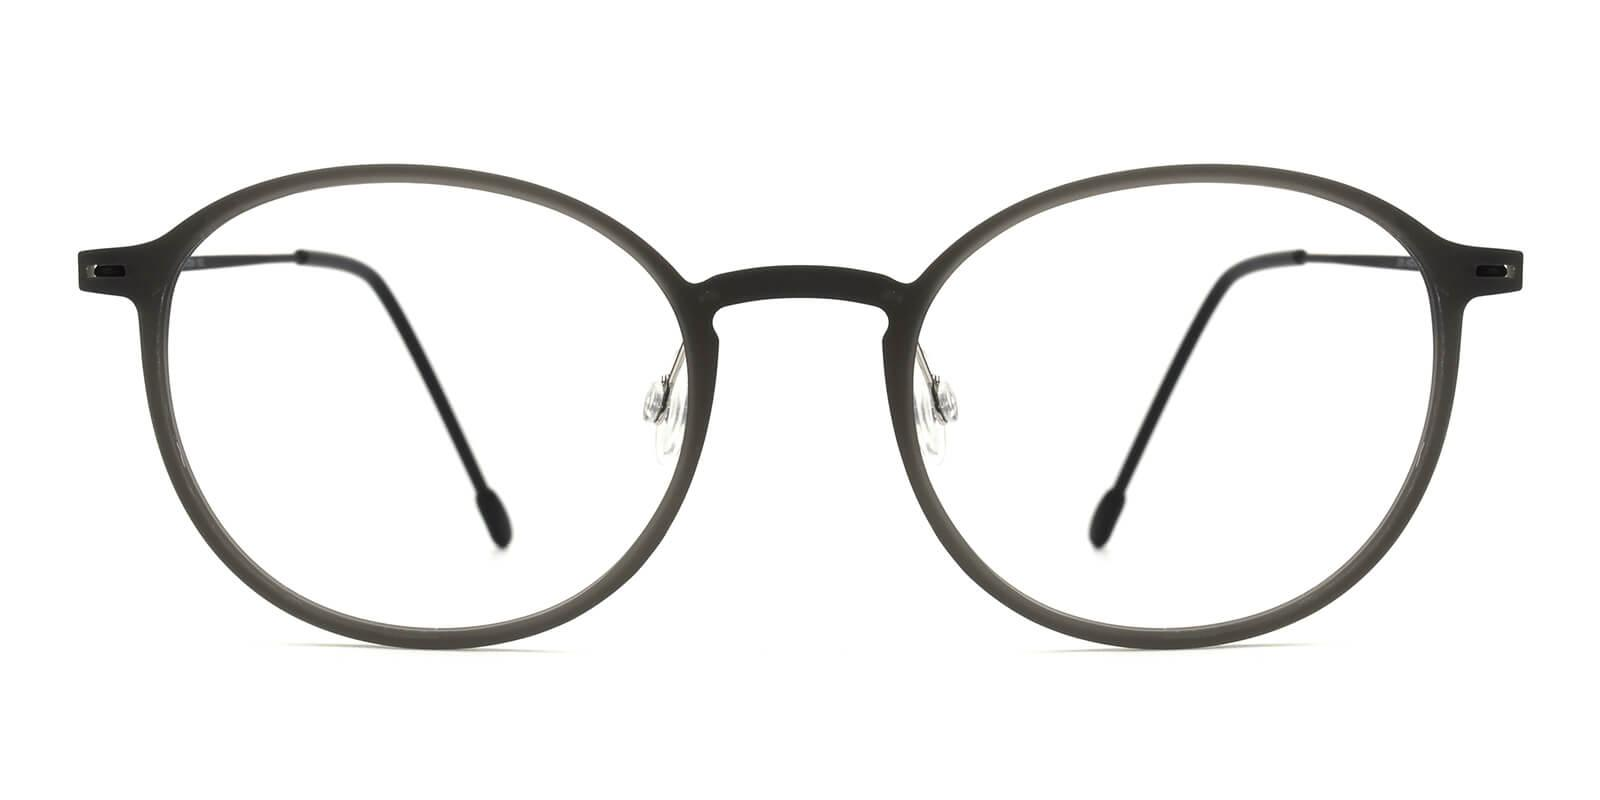 Yunda-Gray-Round-Combination-Eyeglasses-additional2